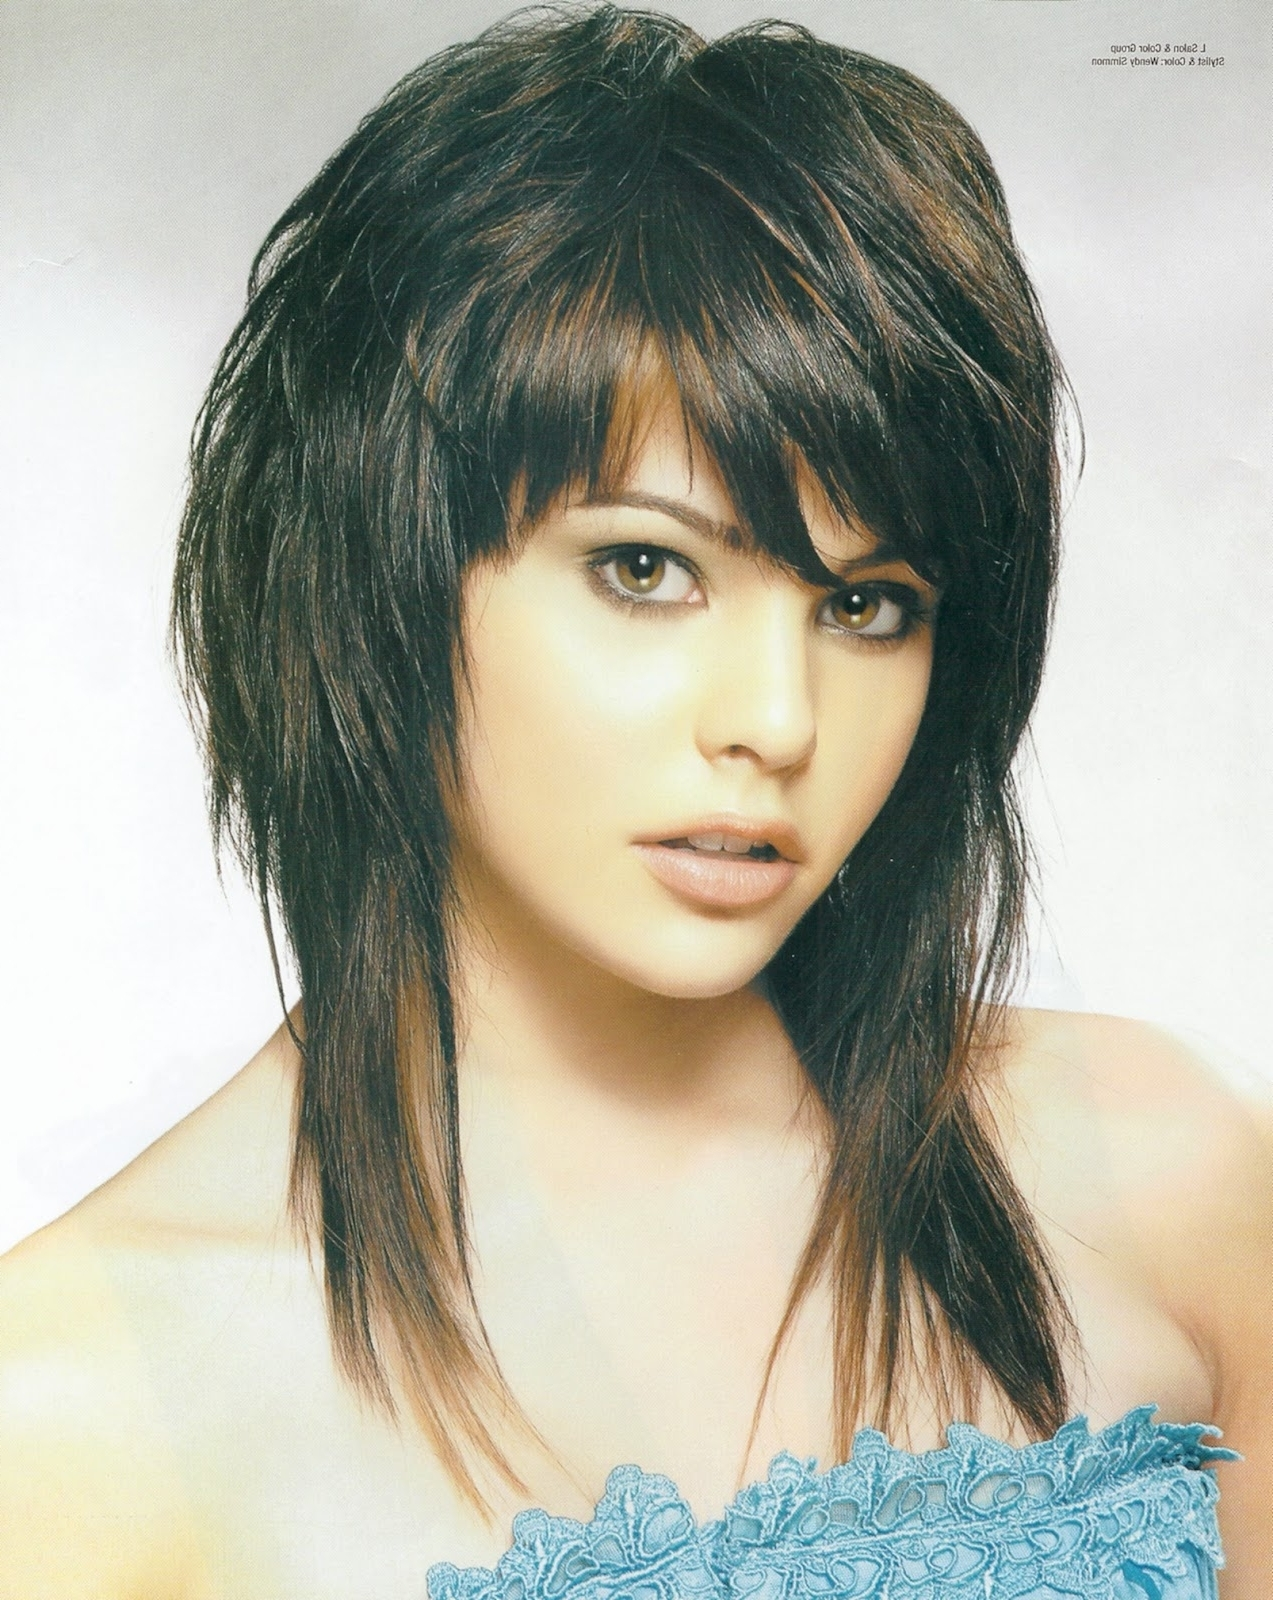 Shag Hairstyles For Women – Hairstyles For Women Intended For Preferred Japanese Shaggy Hairstyles (View 14 of 15)